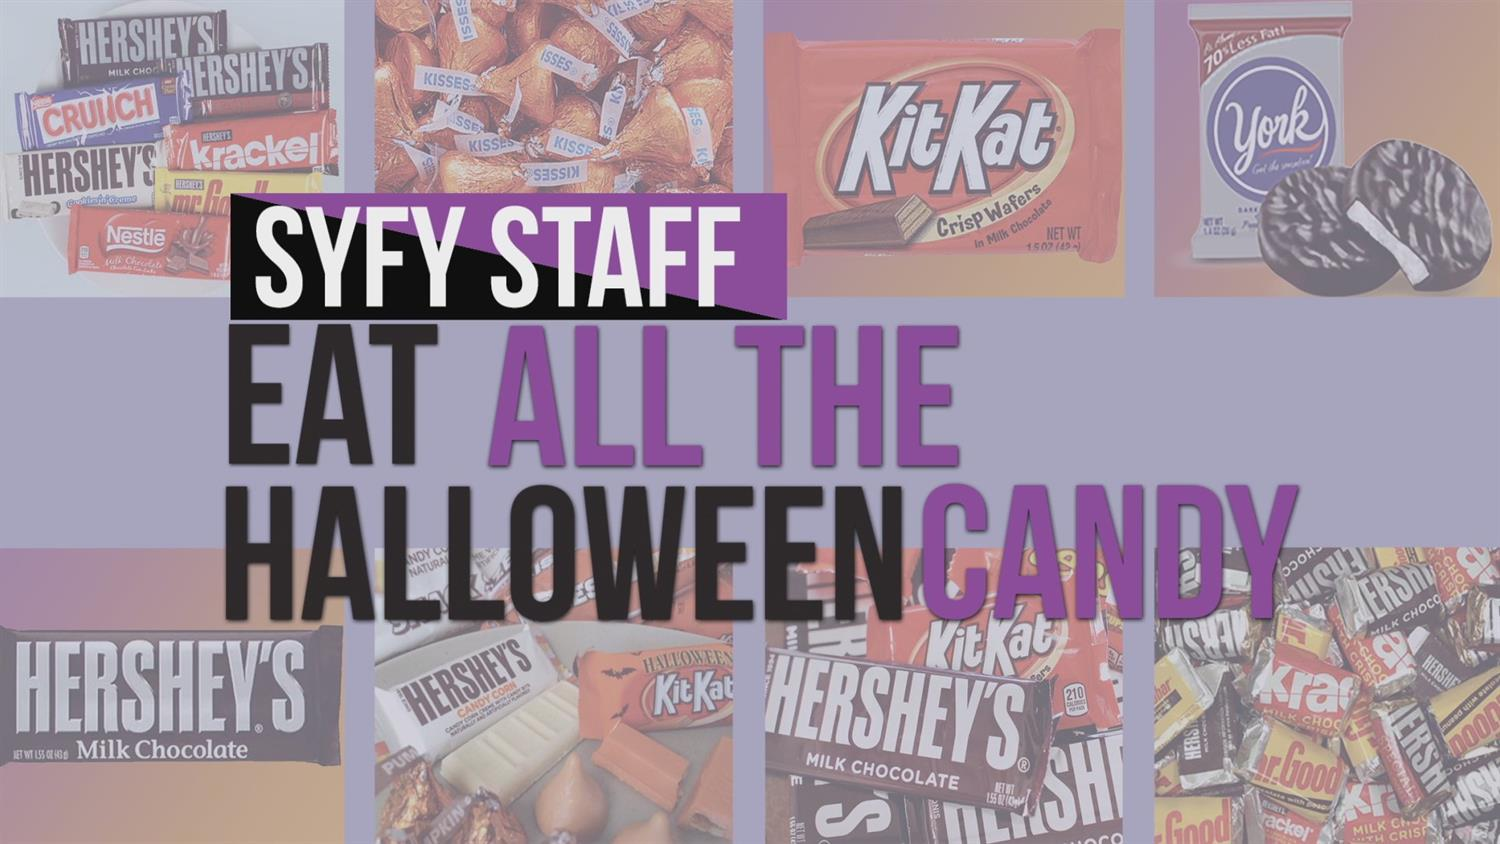 We have pretty strong opinions about how to eat Halloween candy